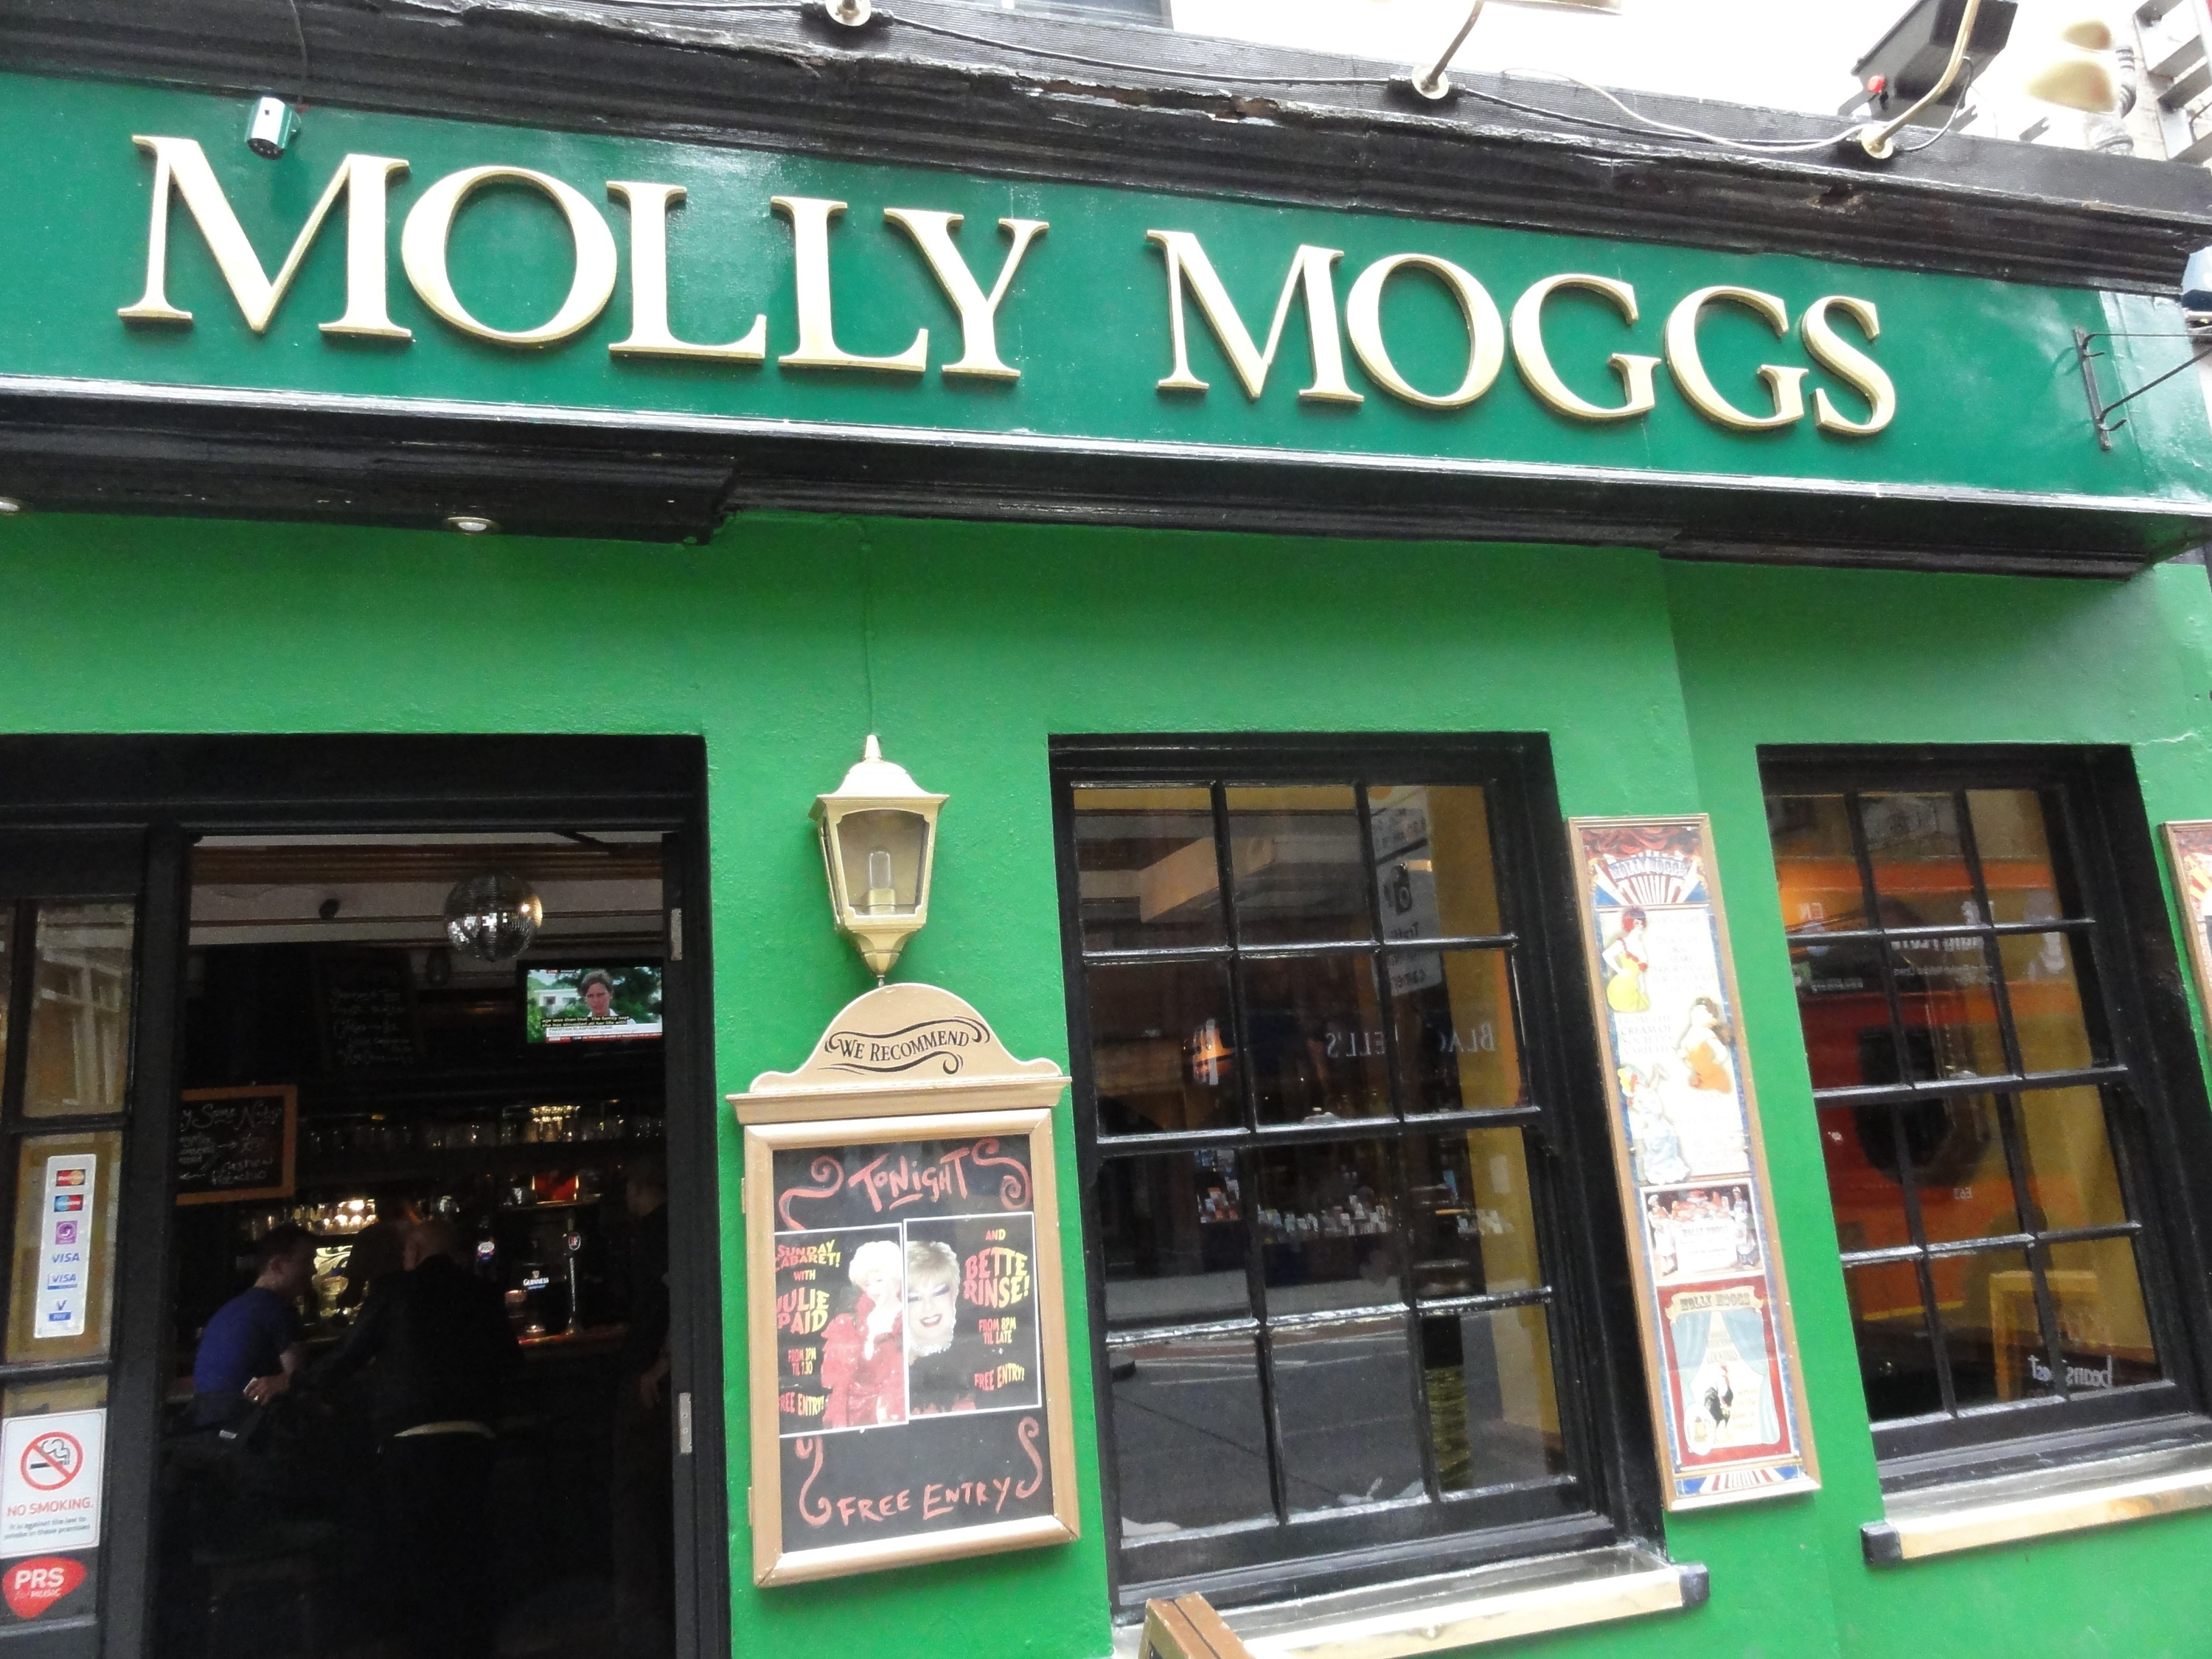 Molly Moggs